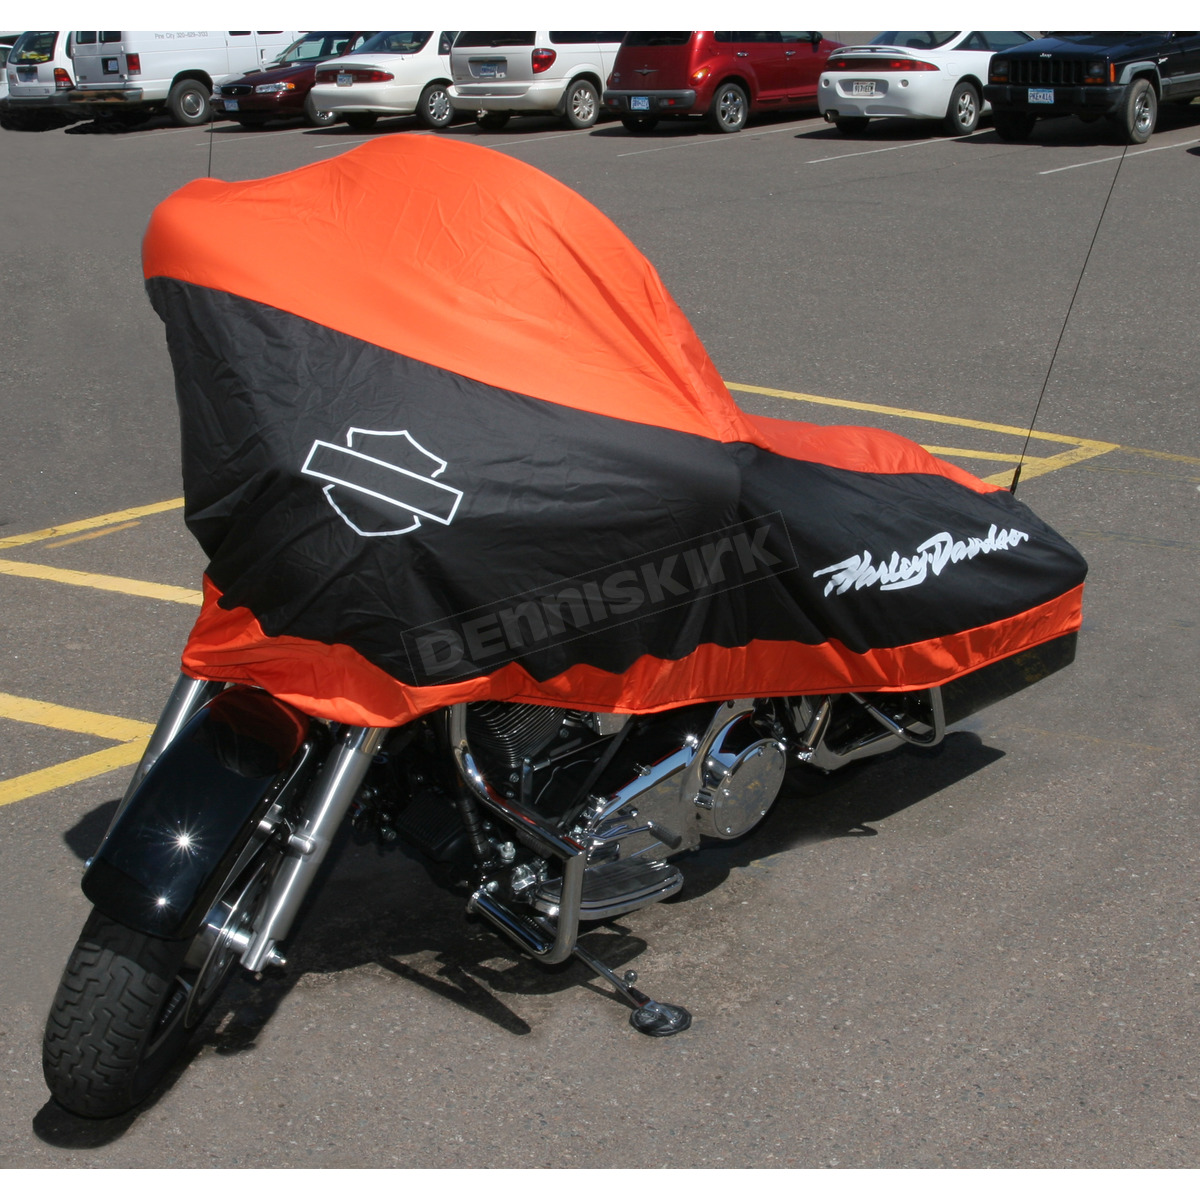 Motorcycle Atvutv And Snowmobile Parts And Accessories | Autos Post